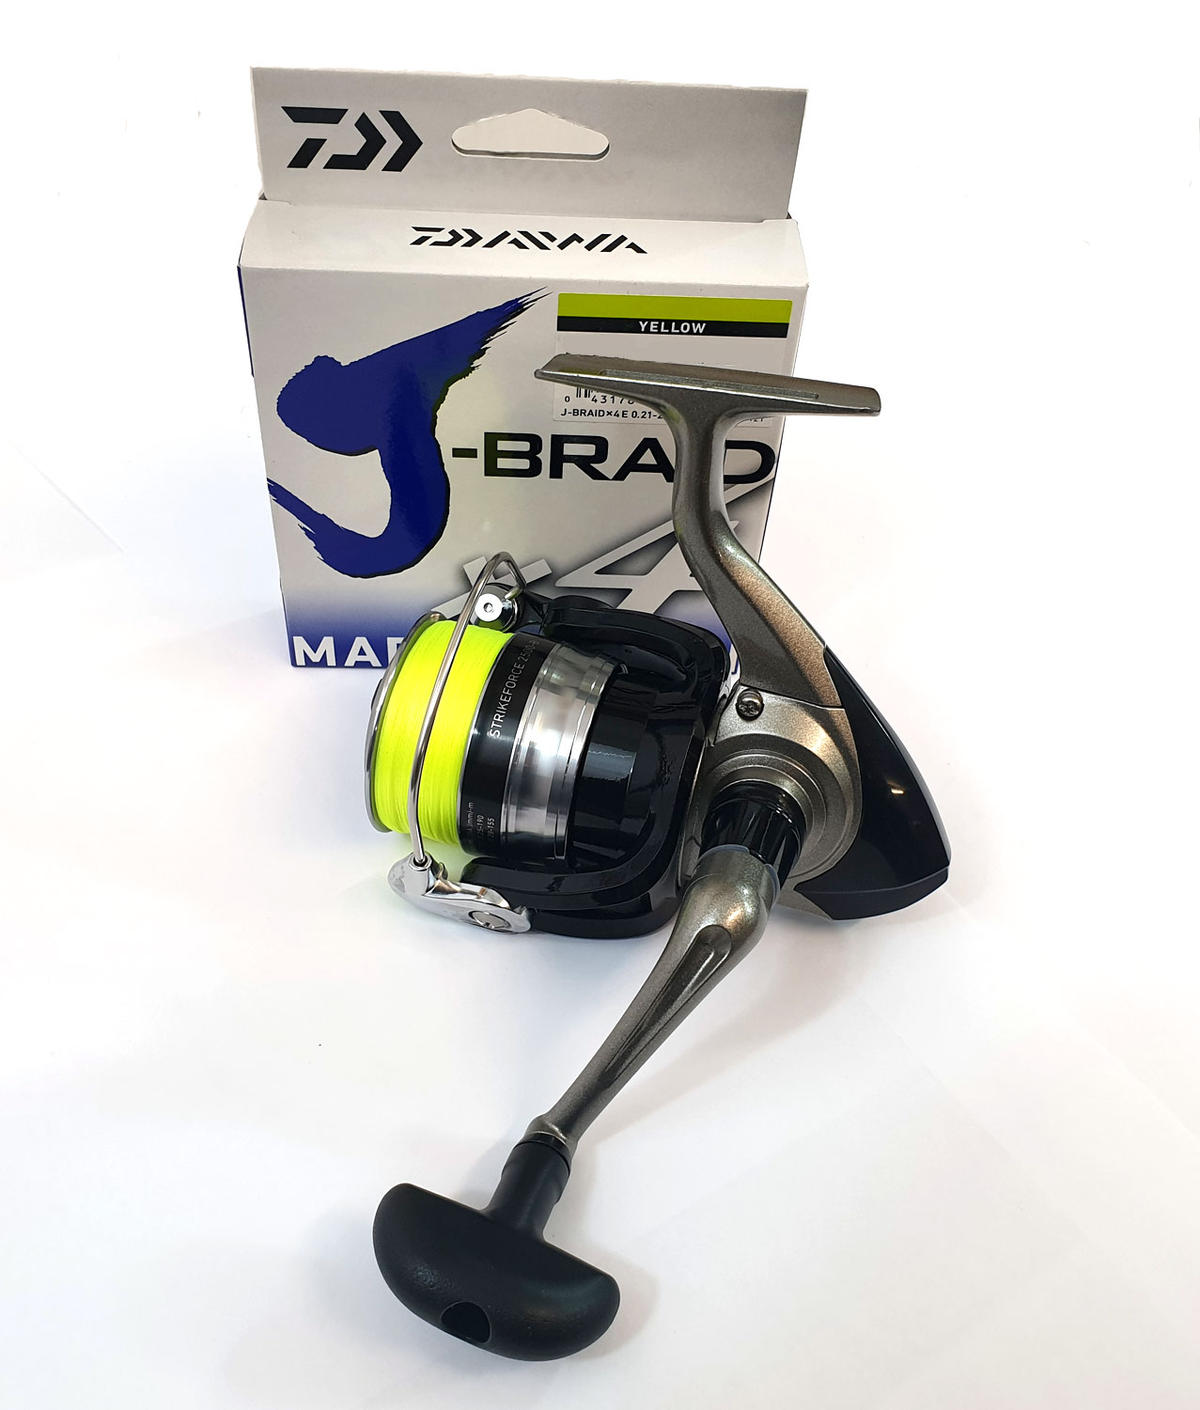 Special Offer Daiwa Strikeforce 2500 Fishing Reel Fully Loaded with J-Braid X4